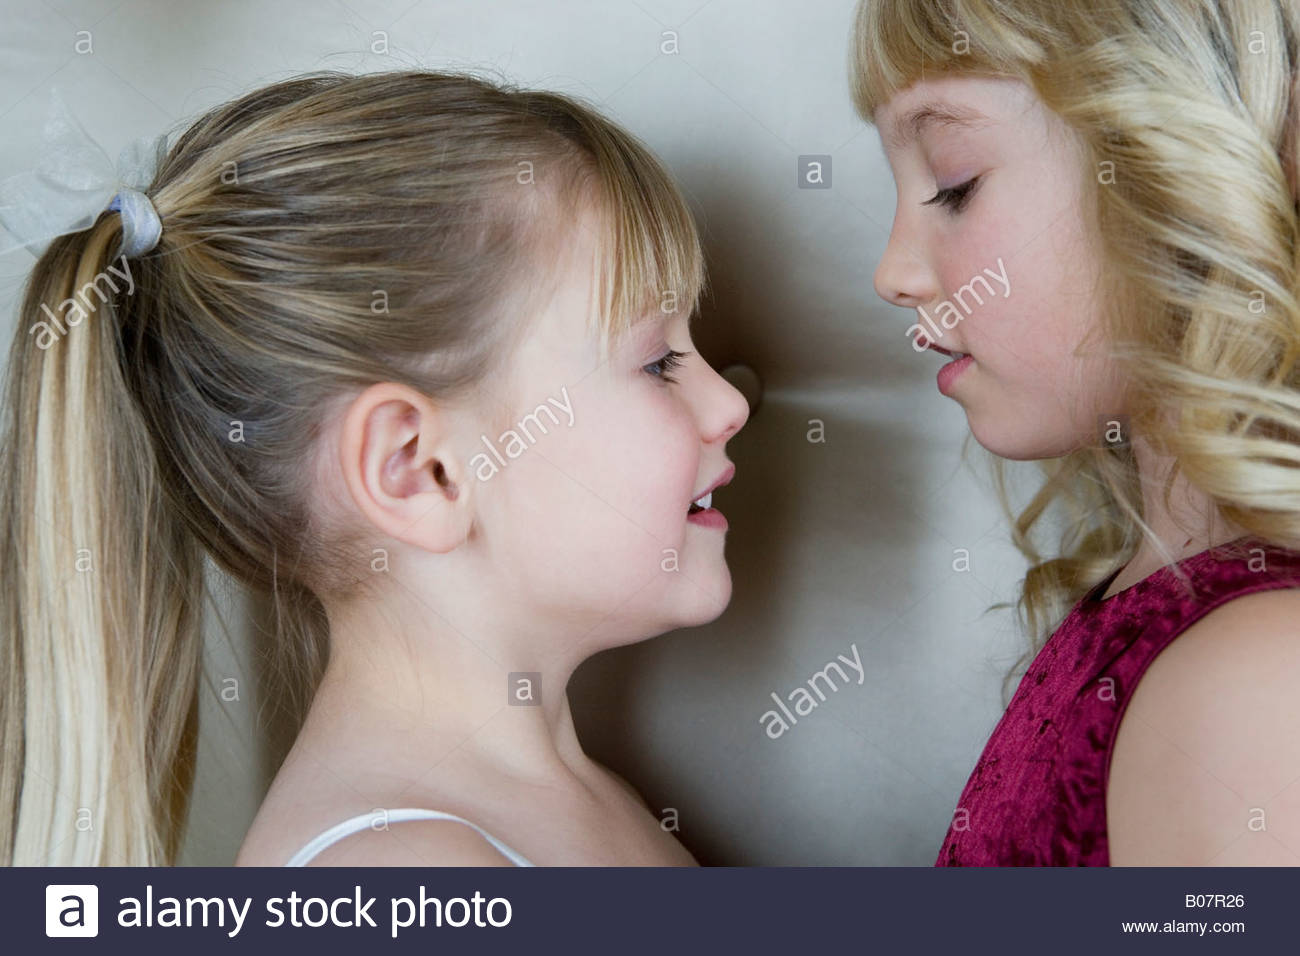 Two friends in party dresses - Stock Image